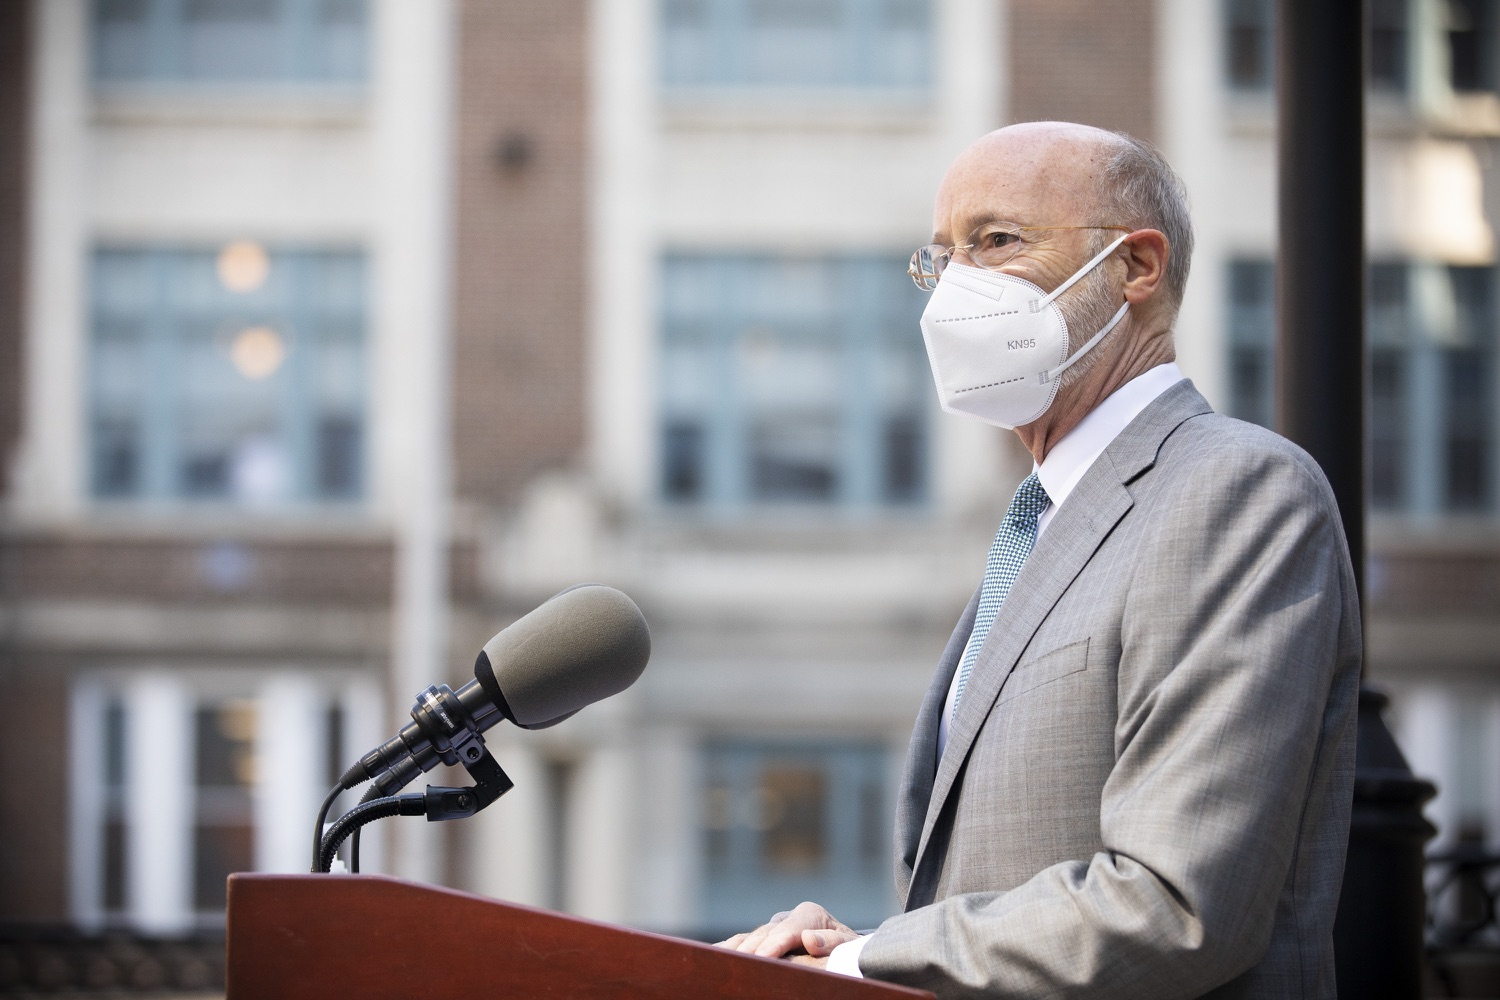 """<a href=""""https://filesource.wostreaming.net/commonwealthofpa/photo/18688_gov_vaccines_dz_002.jpg"""" target=""""_blank"""">⇣Download Photo<br></a>Pennsylvania Governor Tom Wolf speaking with the press.  As Pennsylvania continues its accelerated COVID-19 vaccination plan, Pennsylvanians who are not able to leave their homes must be reached, and various state agencies and community groups are helping. Governor Tom Wolf visited Reading to talk about how the state and its partners are using various means to reach people not able to leave home to be vaccinated against COVID-19.  APRIL 26, 2021 - READING, PA"""